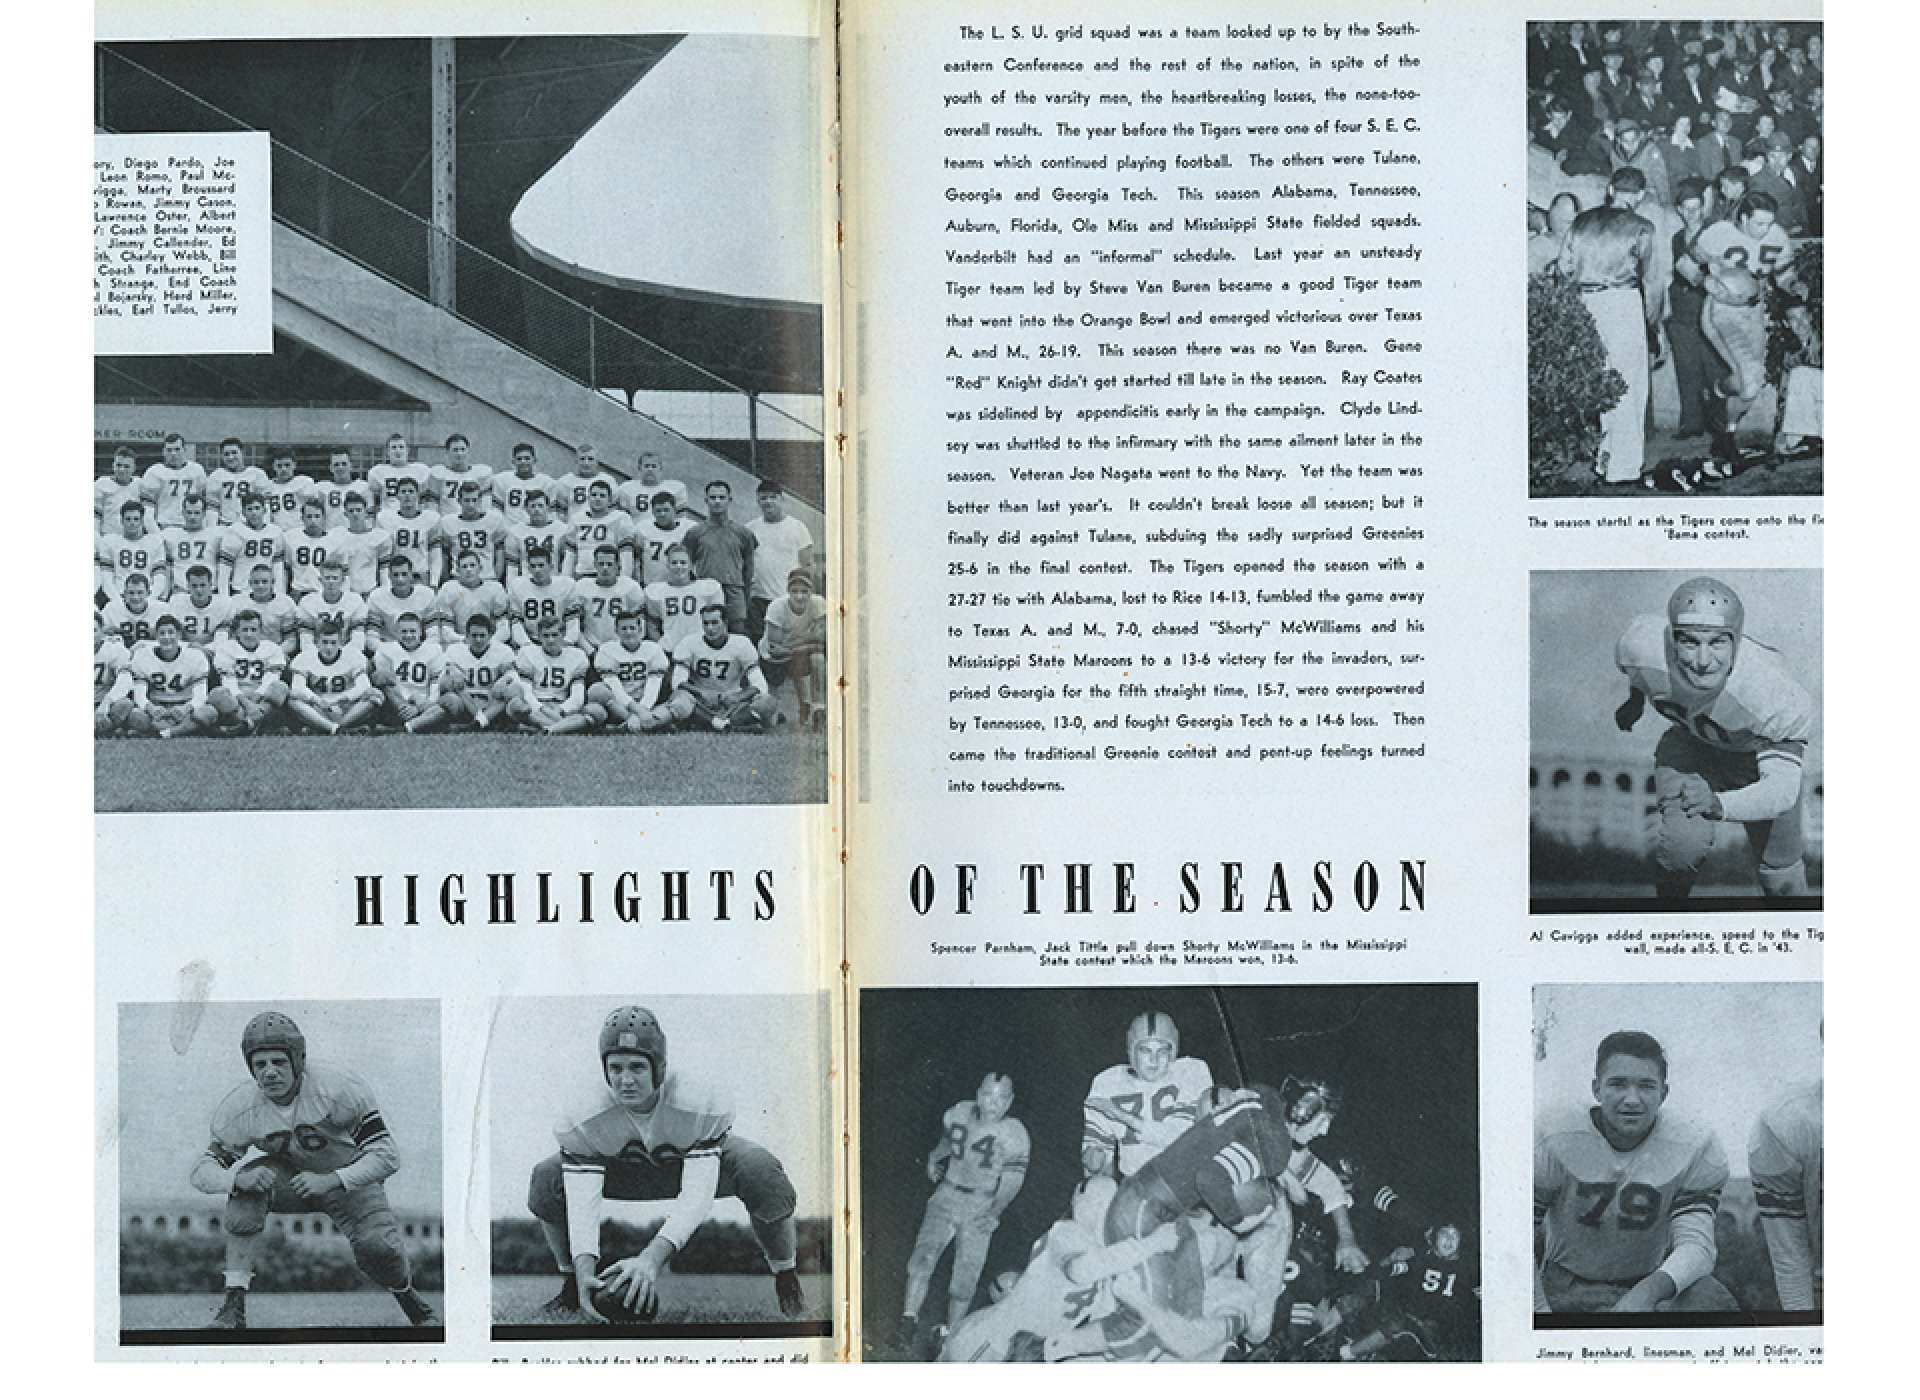 1944 LSU Tiger Football Season Highlights